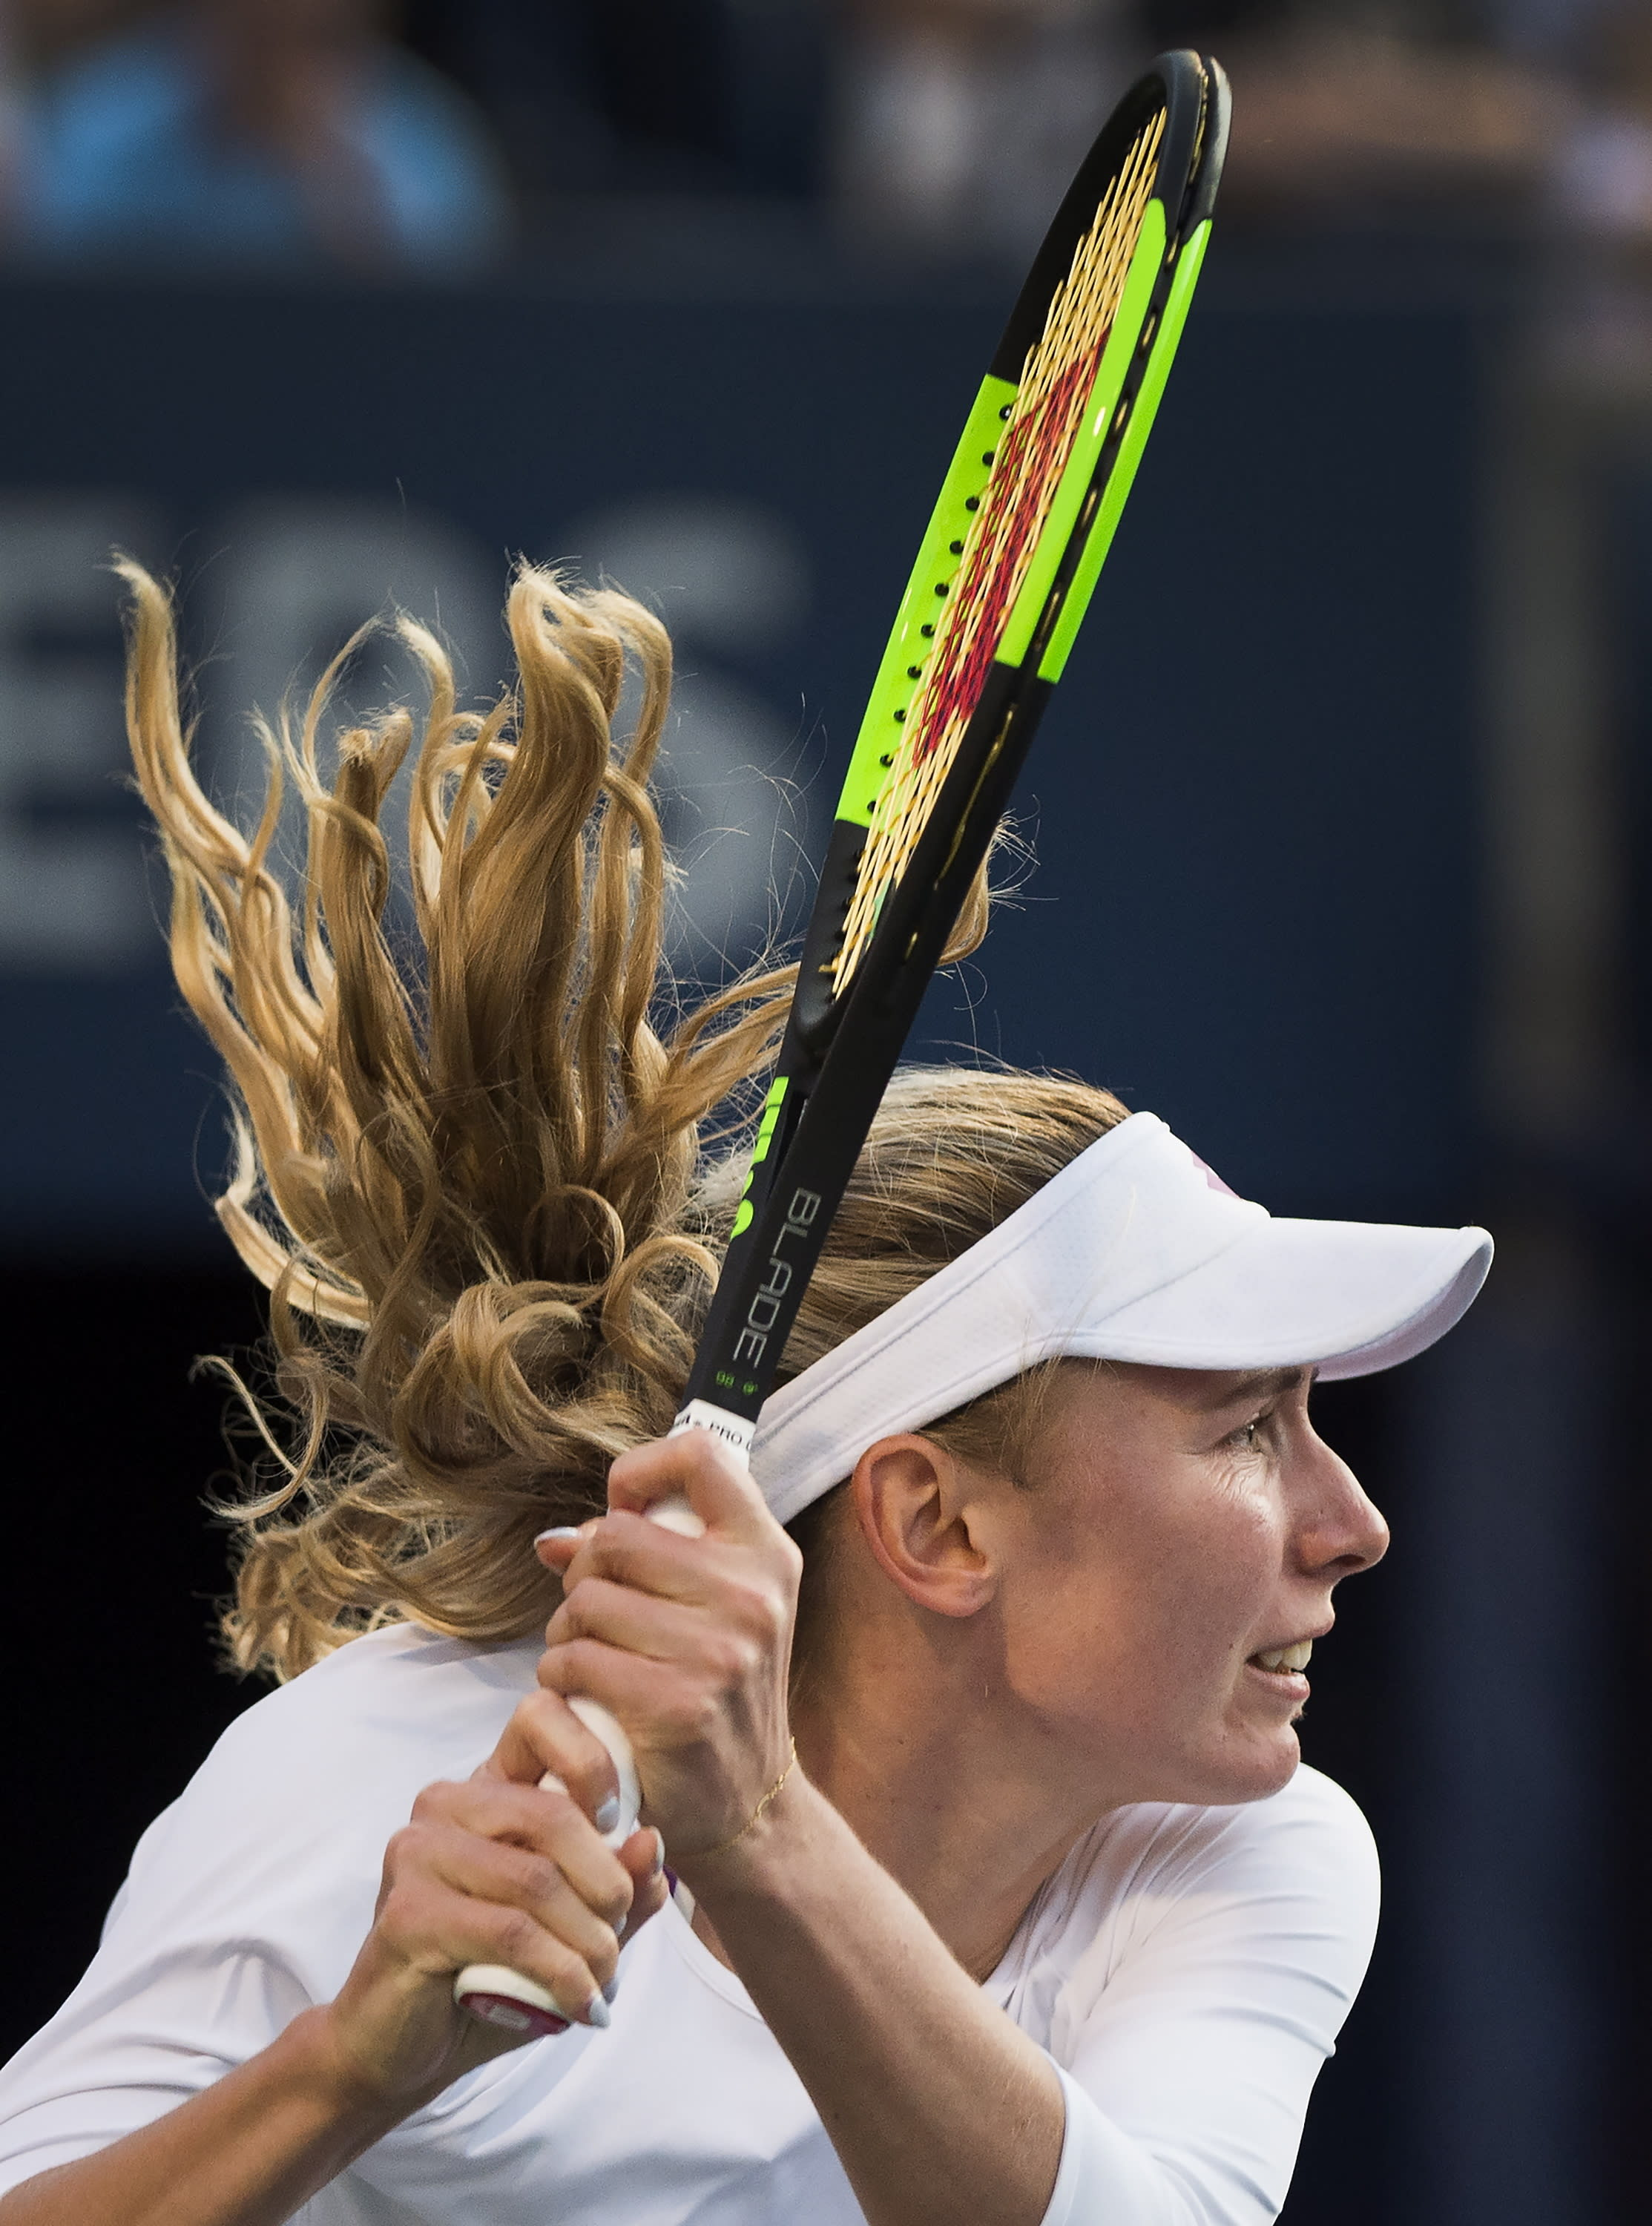 Ekaterina Alexandrova, of Russia, watches a return to Serena Williams, of the United States, during the Rogers Cup women's tennis tournament Thursday, Aug. 8, 2019, in Toronto. (Nathan Denette/The Canadian Press via AP)